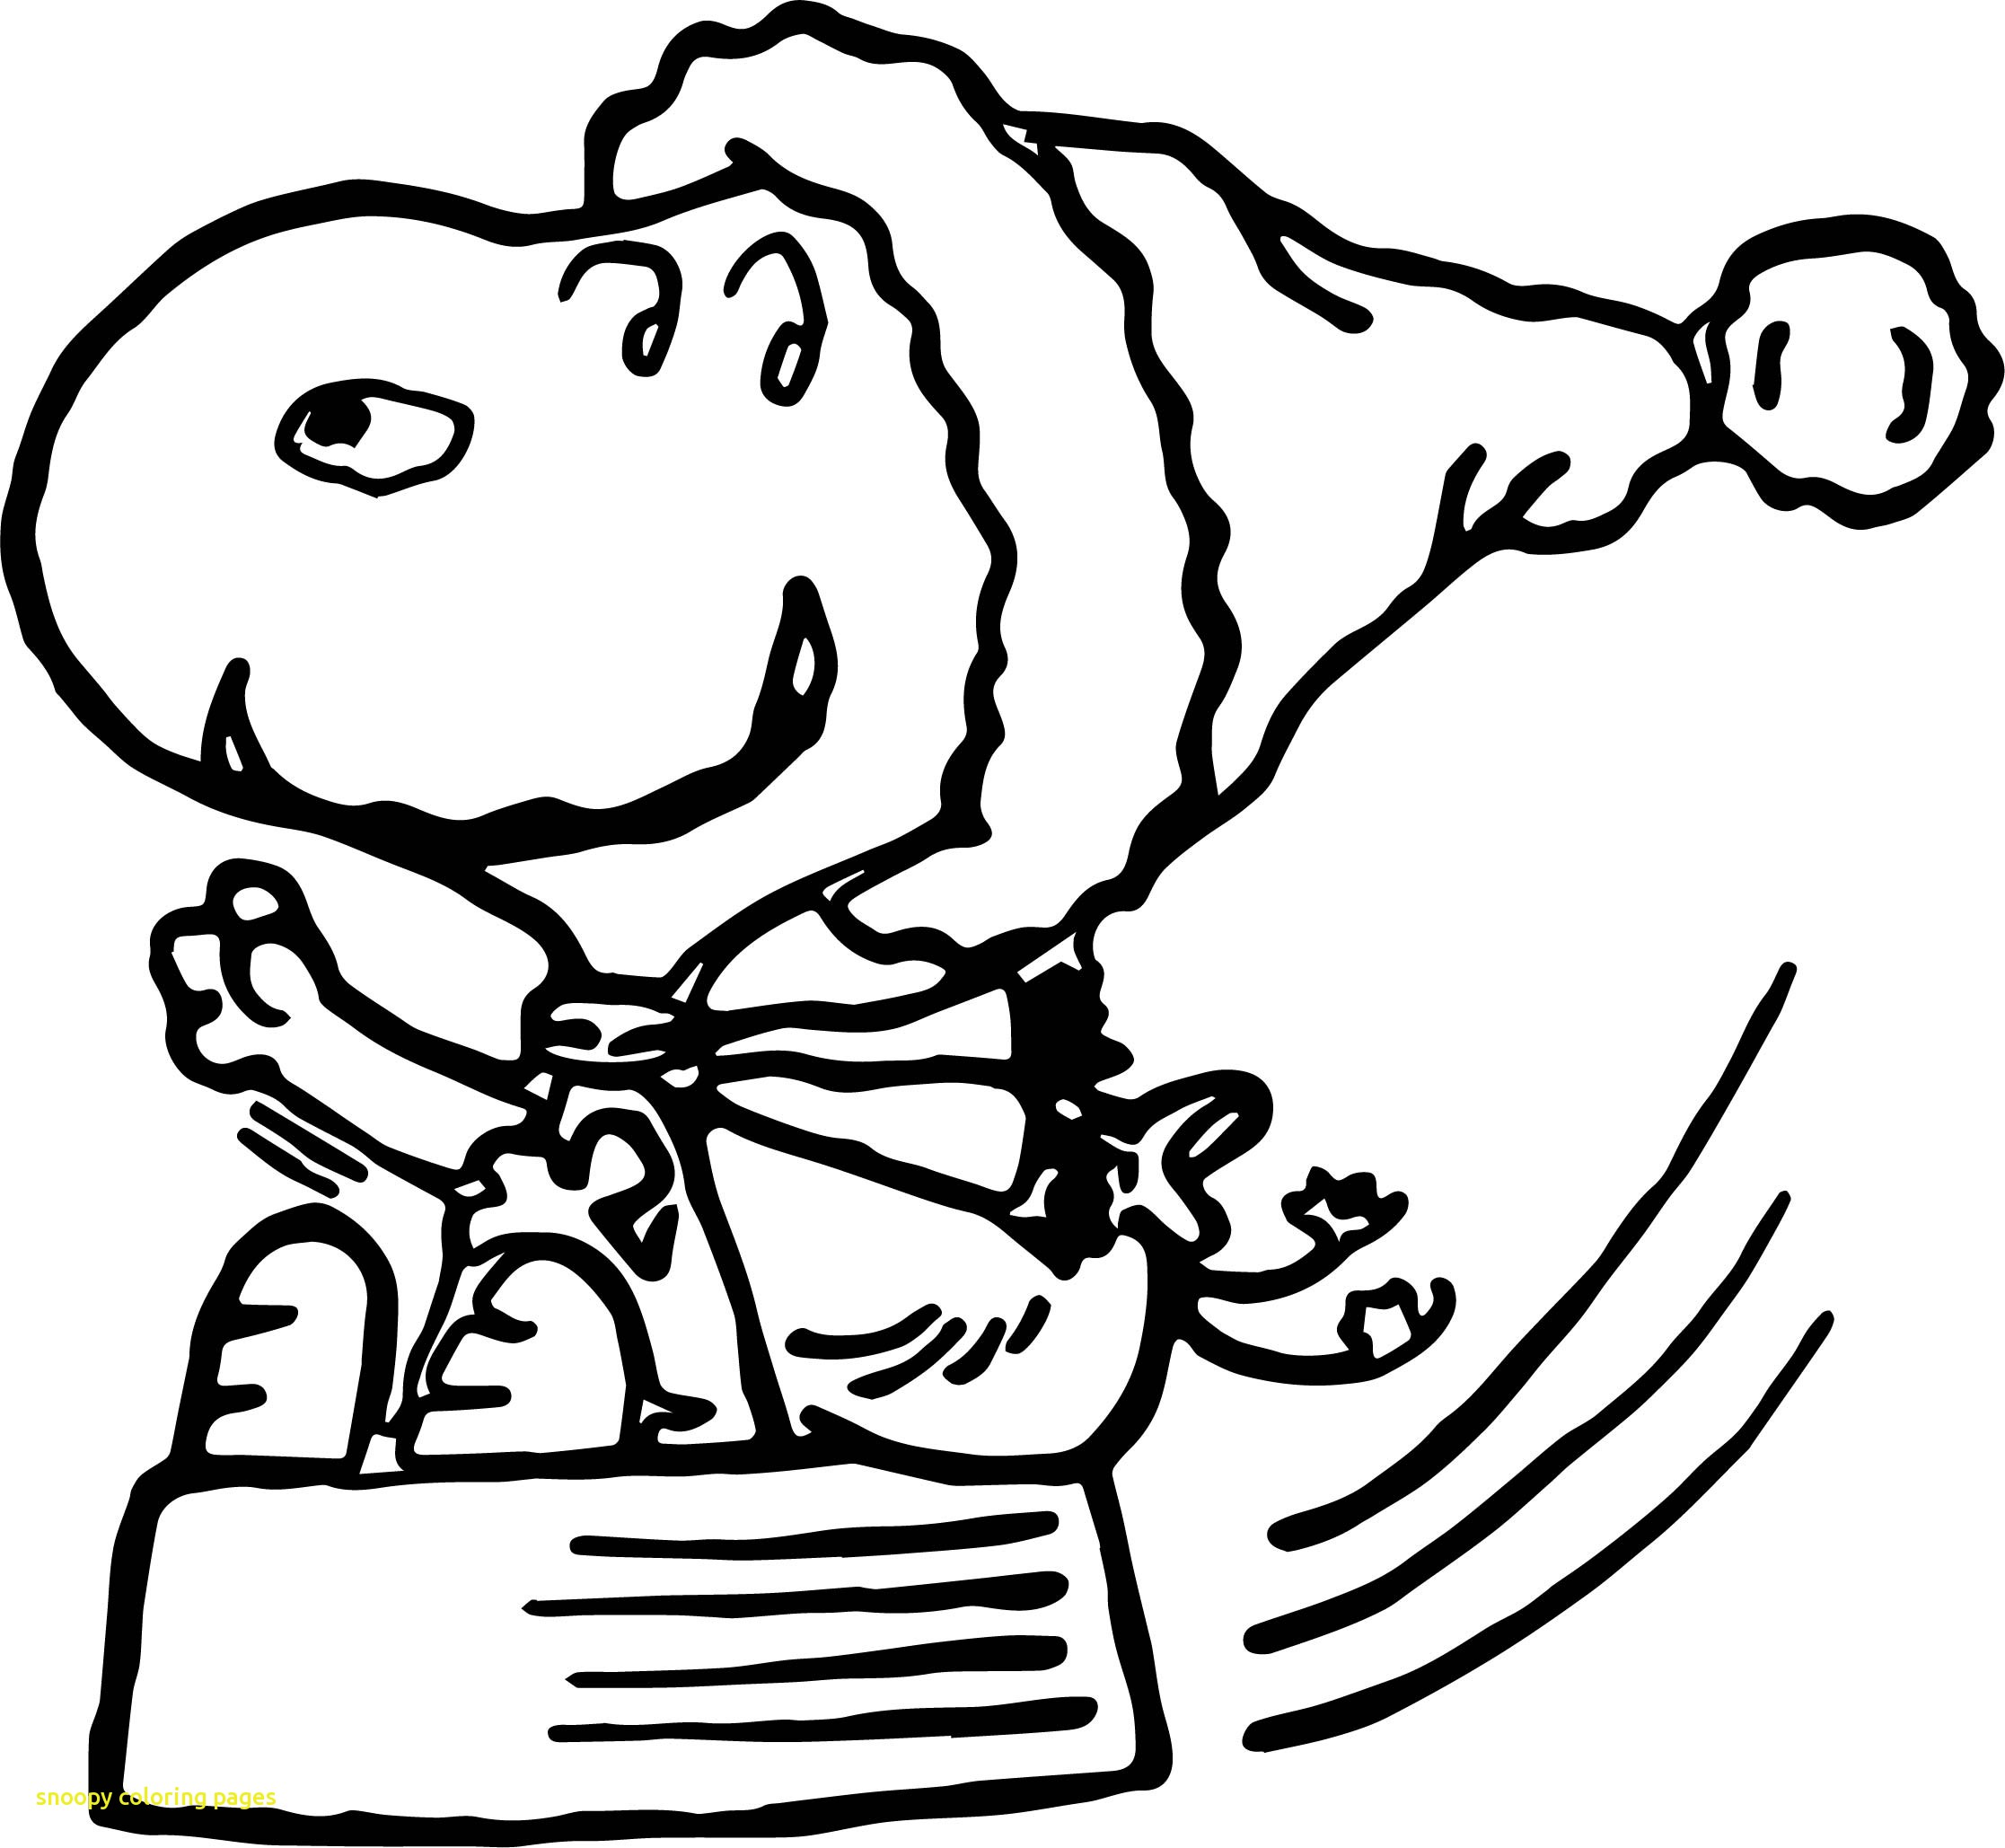 2233x2058 Snoopy Coloring Pages With Christmas Snoopy Coloring Page